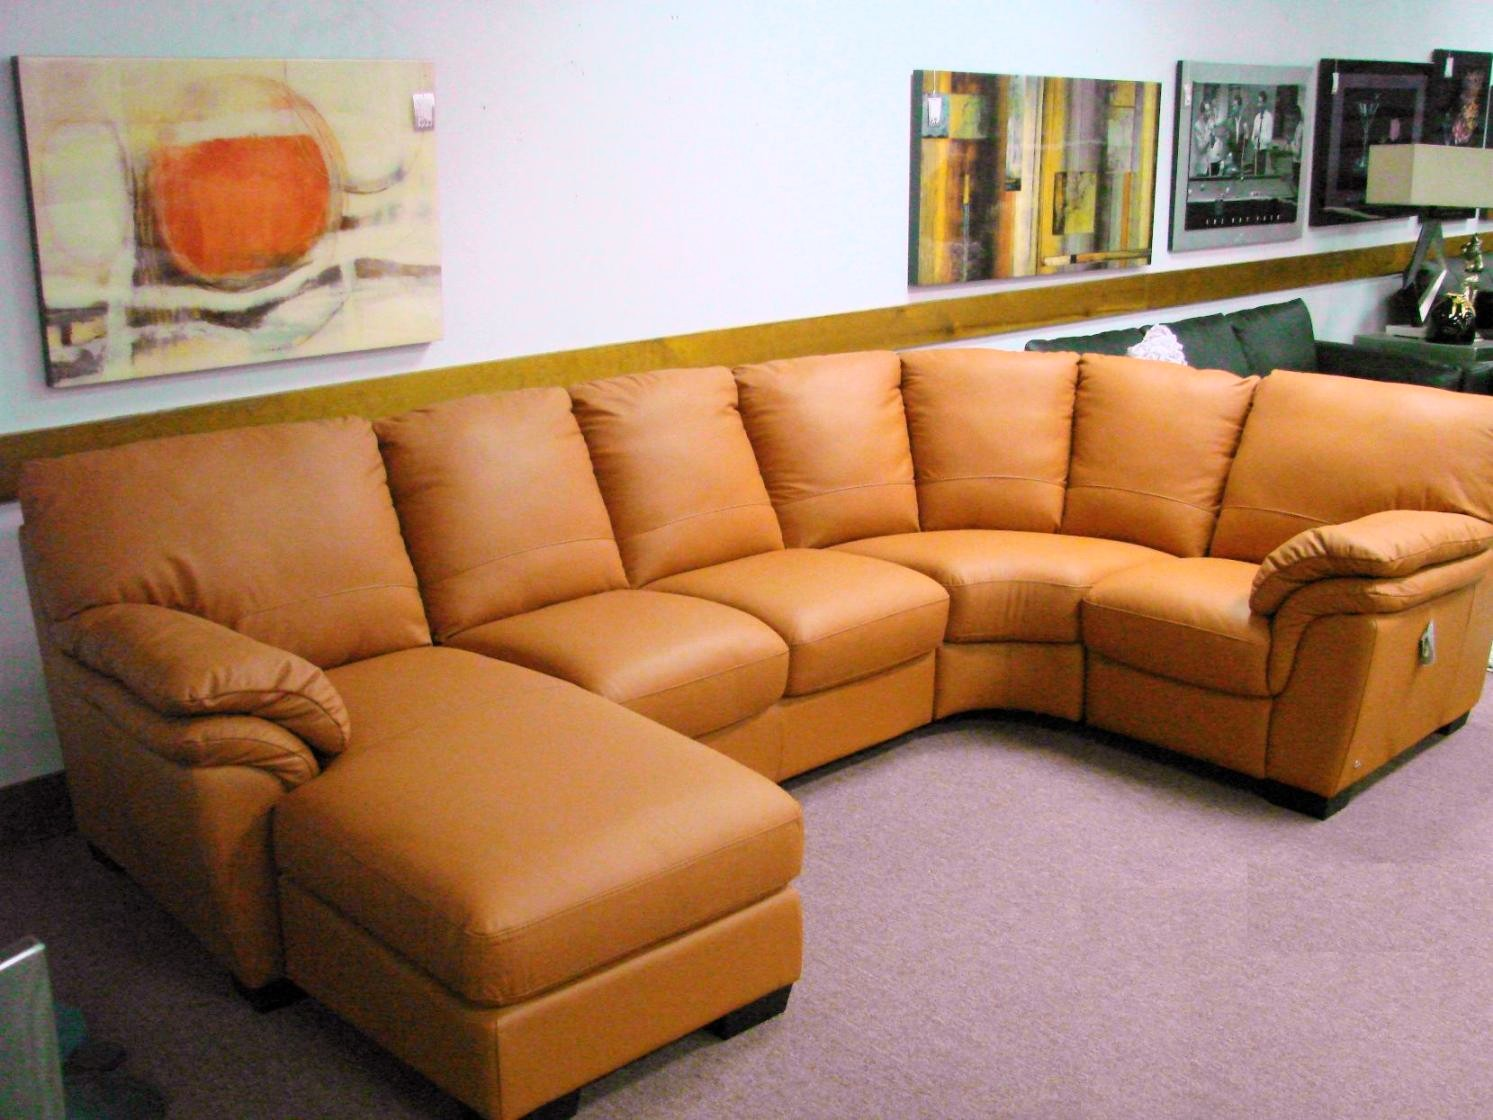 Natuzzi Leather Sofas U0026 Sectionals By Interior Concepts Furniture: Orange  Leather Sofa By Natuzzi Editions